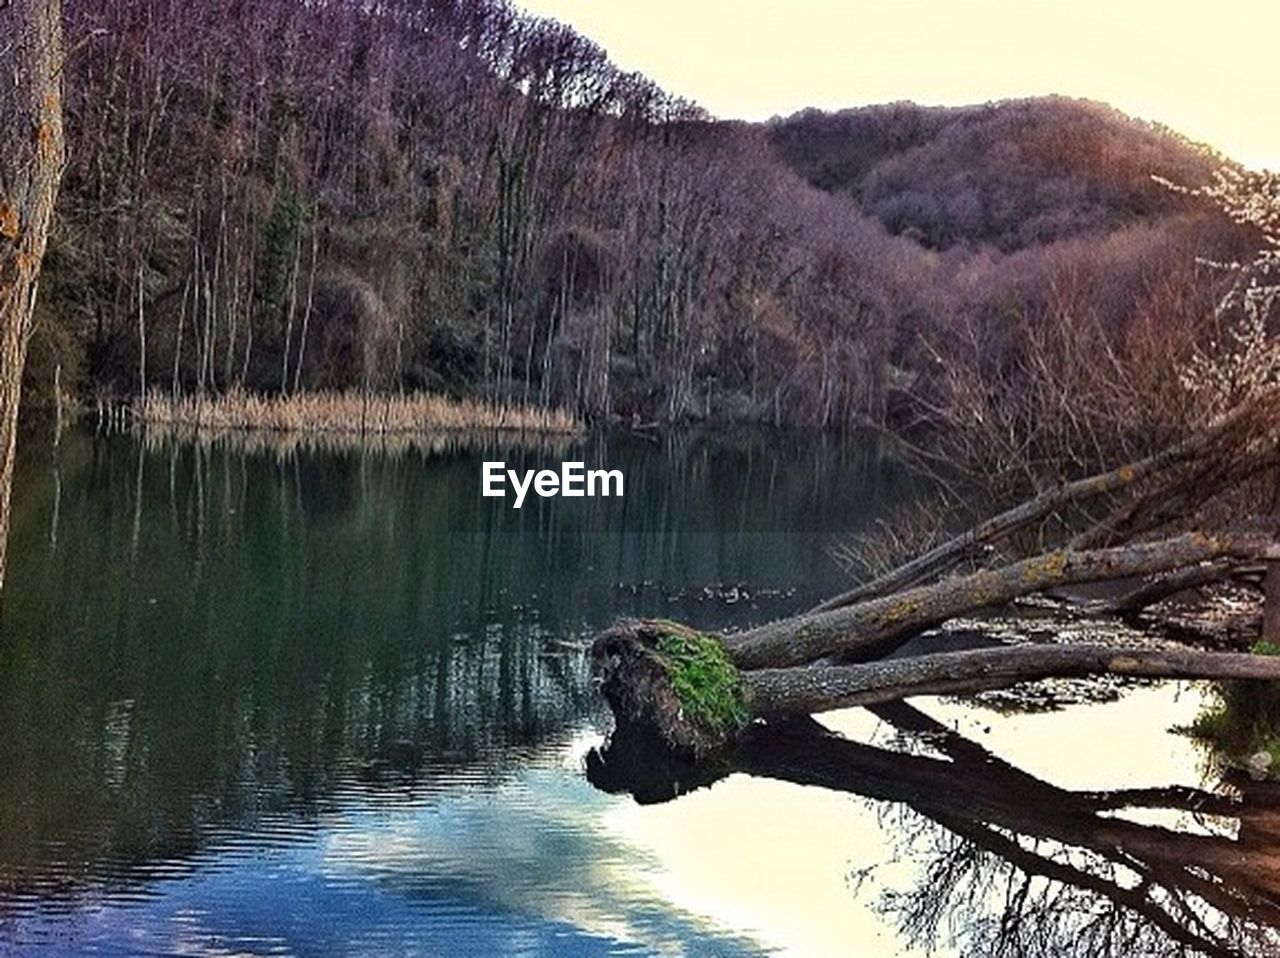 tree, nature, lake, water, tranquility, tranquil scene, reflection, beauty in nature, outdoors, scenics, no people, landscape, forest, sky, growth, plant, tree trunk, day, grass, mountain, sunset, animal themes